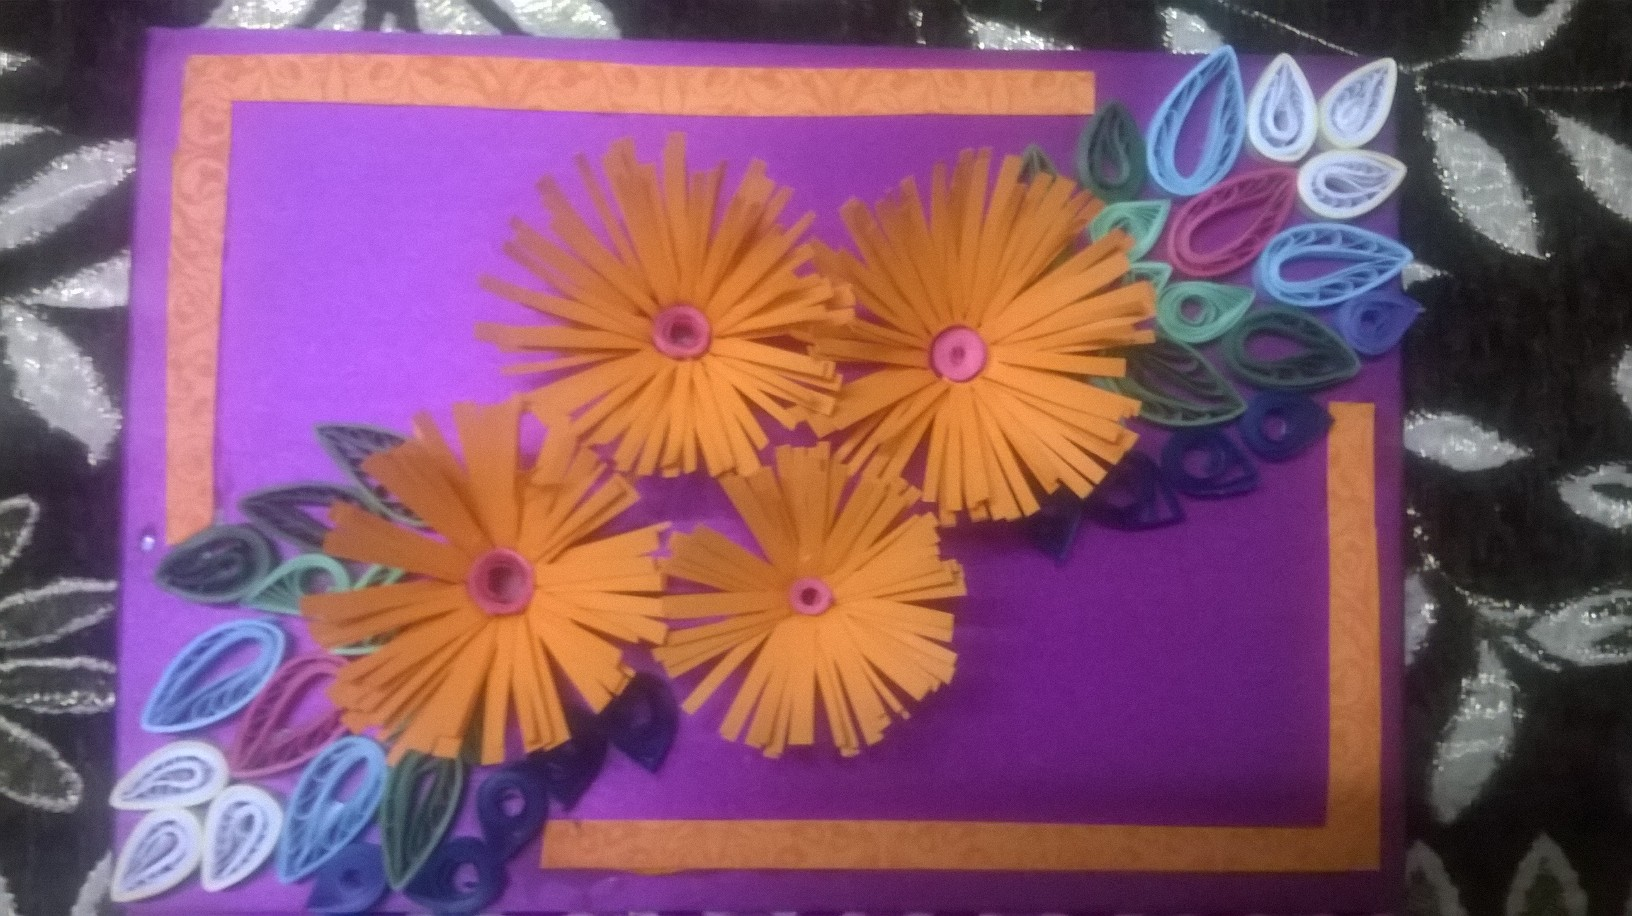 Greeting card sharing our experiences diy hand crafted paper quilled flower greeting card 16 kristyandbryce Choice Image